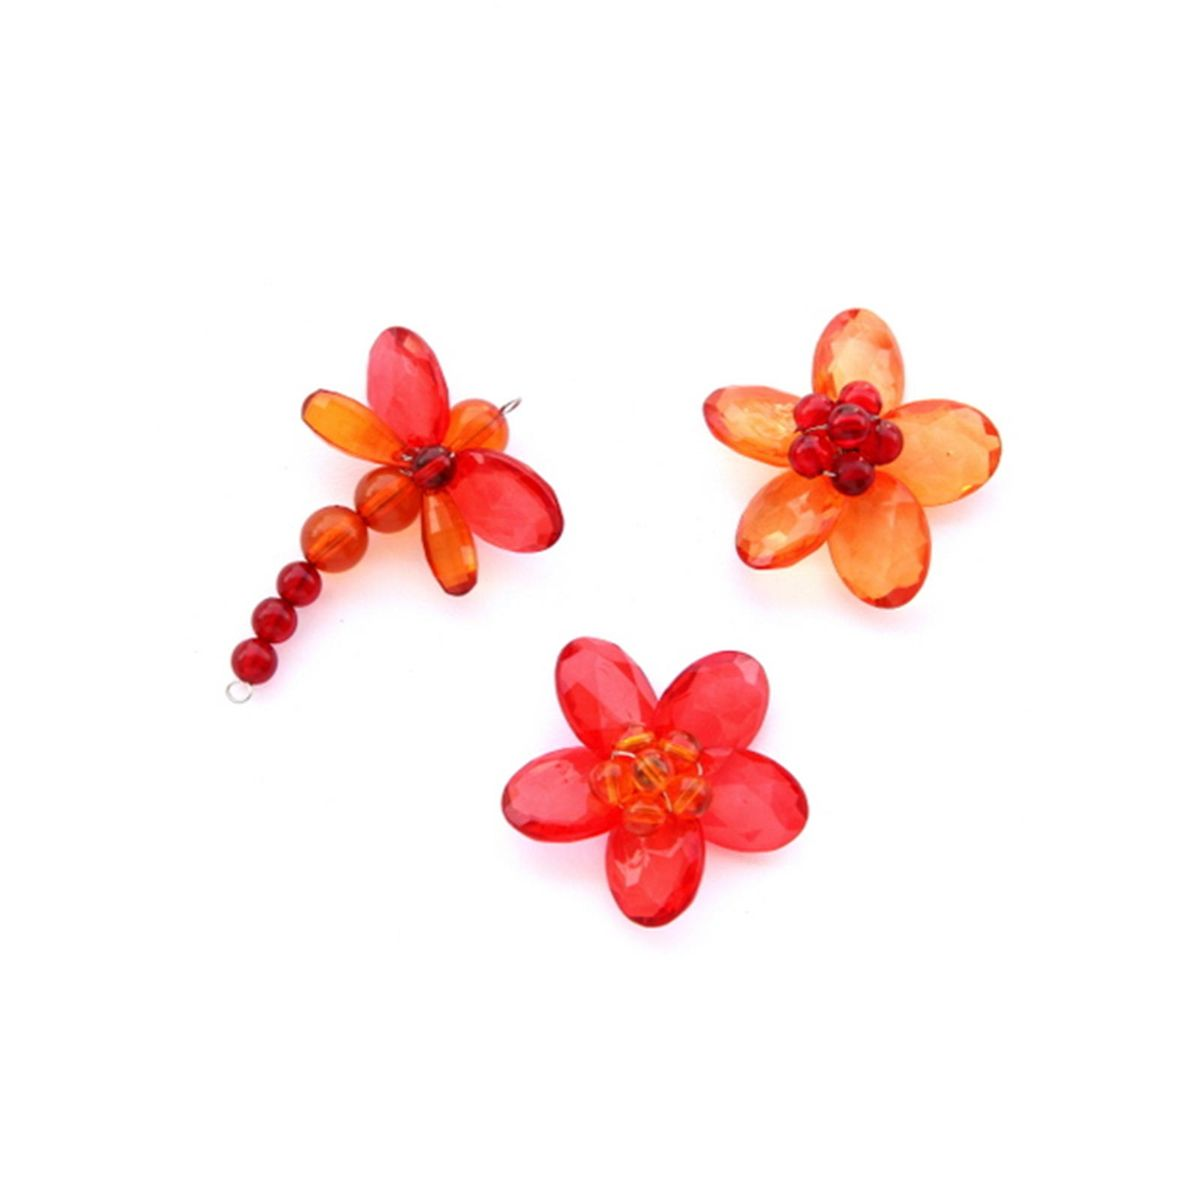 Quirky Fridge Magnets- Garden Red